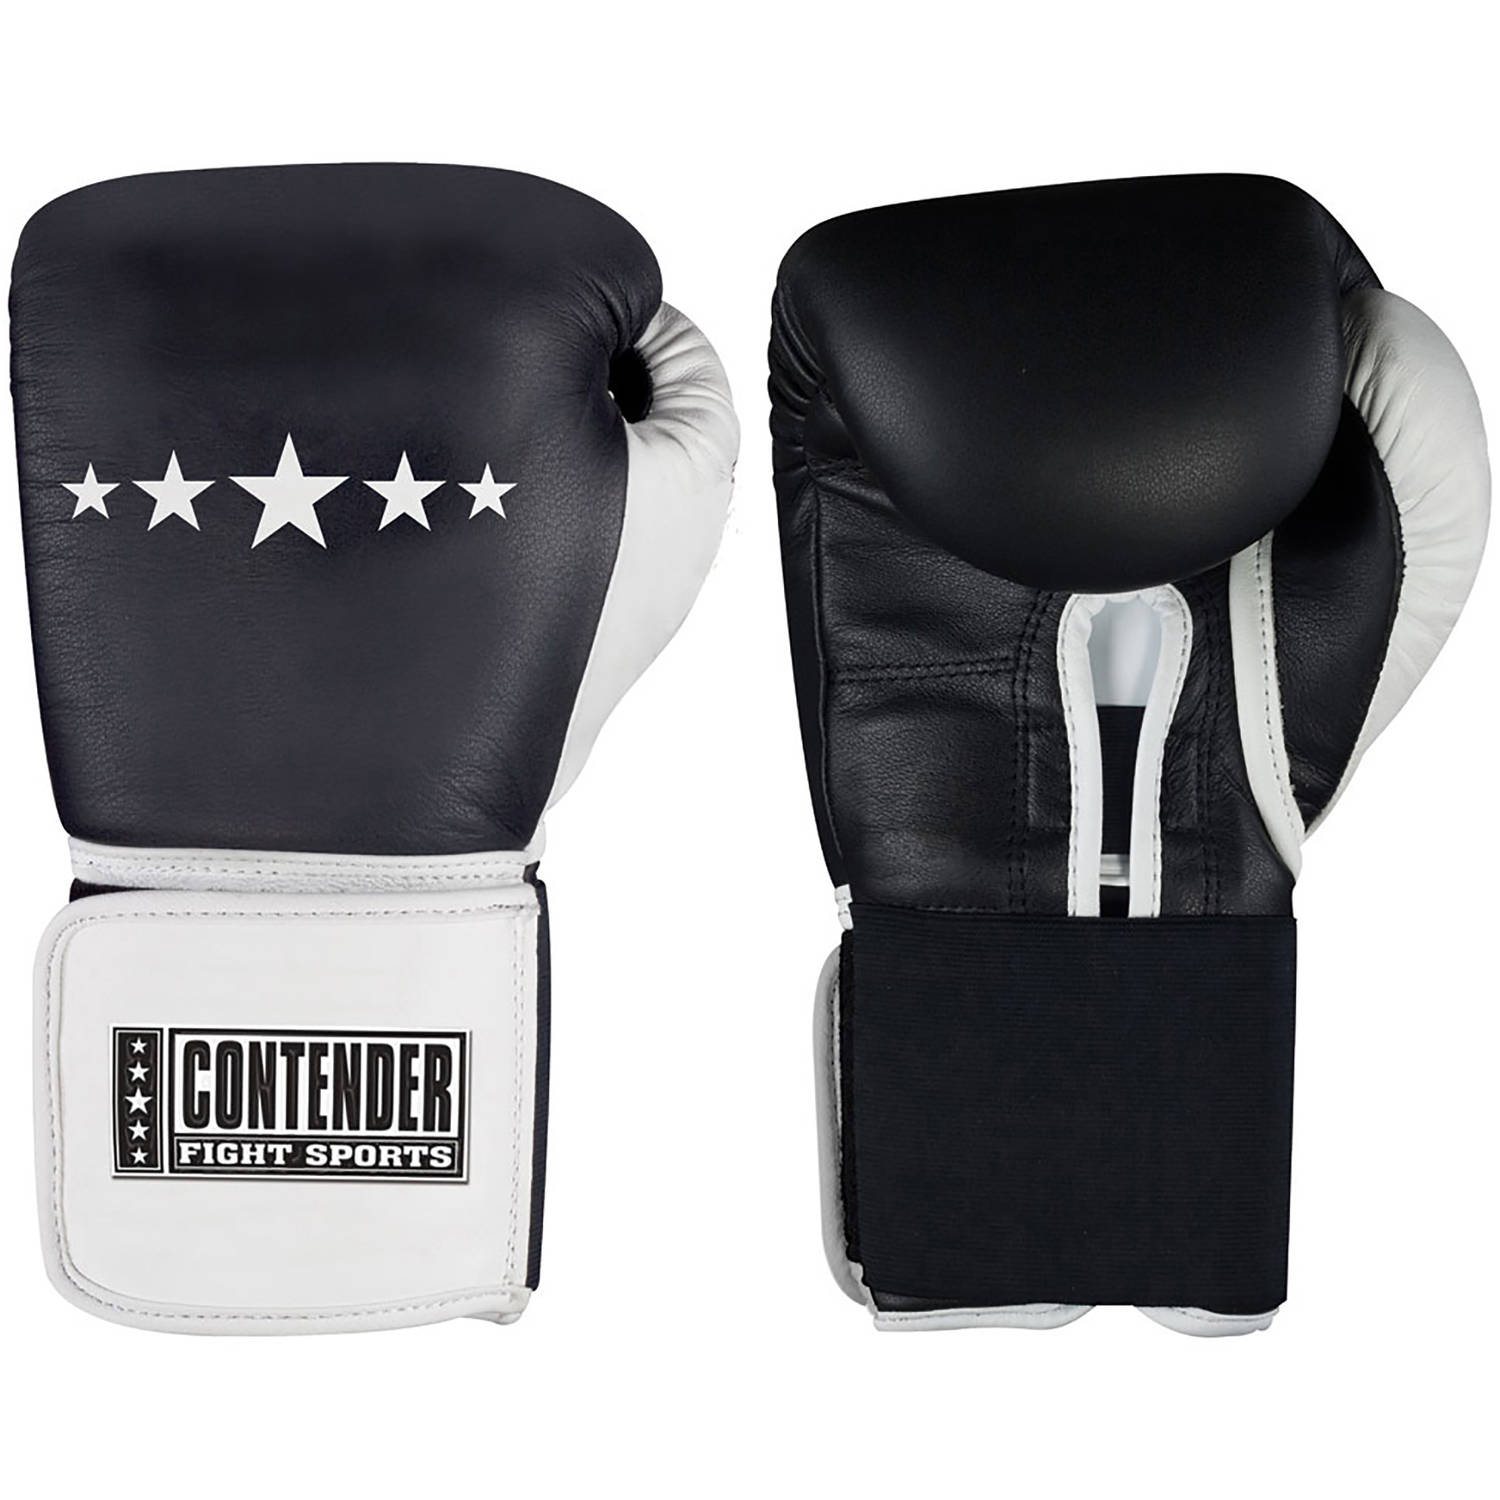 Contender Fight Sports JEL World Training Gloves